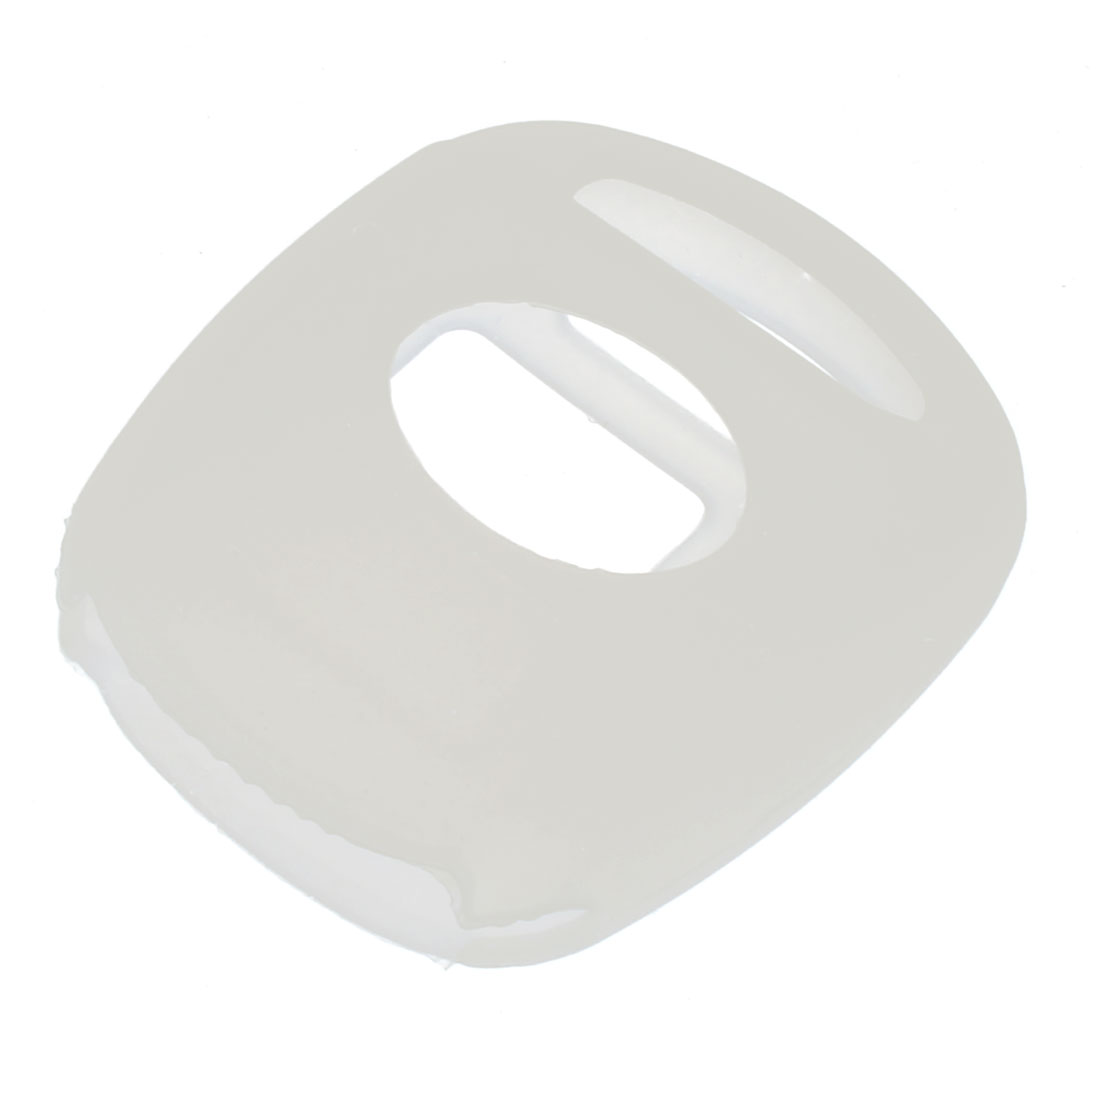 Silicone Detachable Romote Car Key Bag Protector Holder Cover Case White